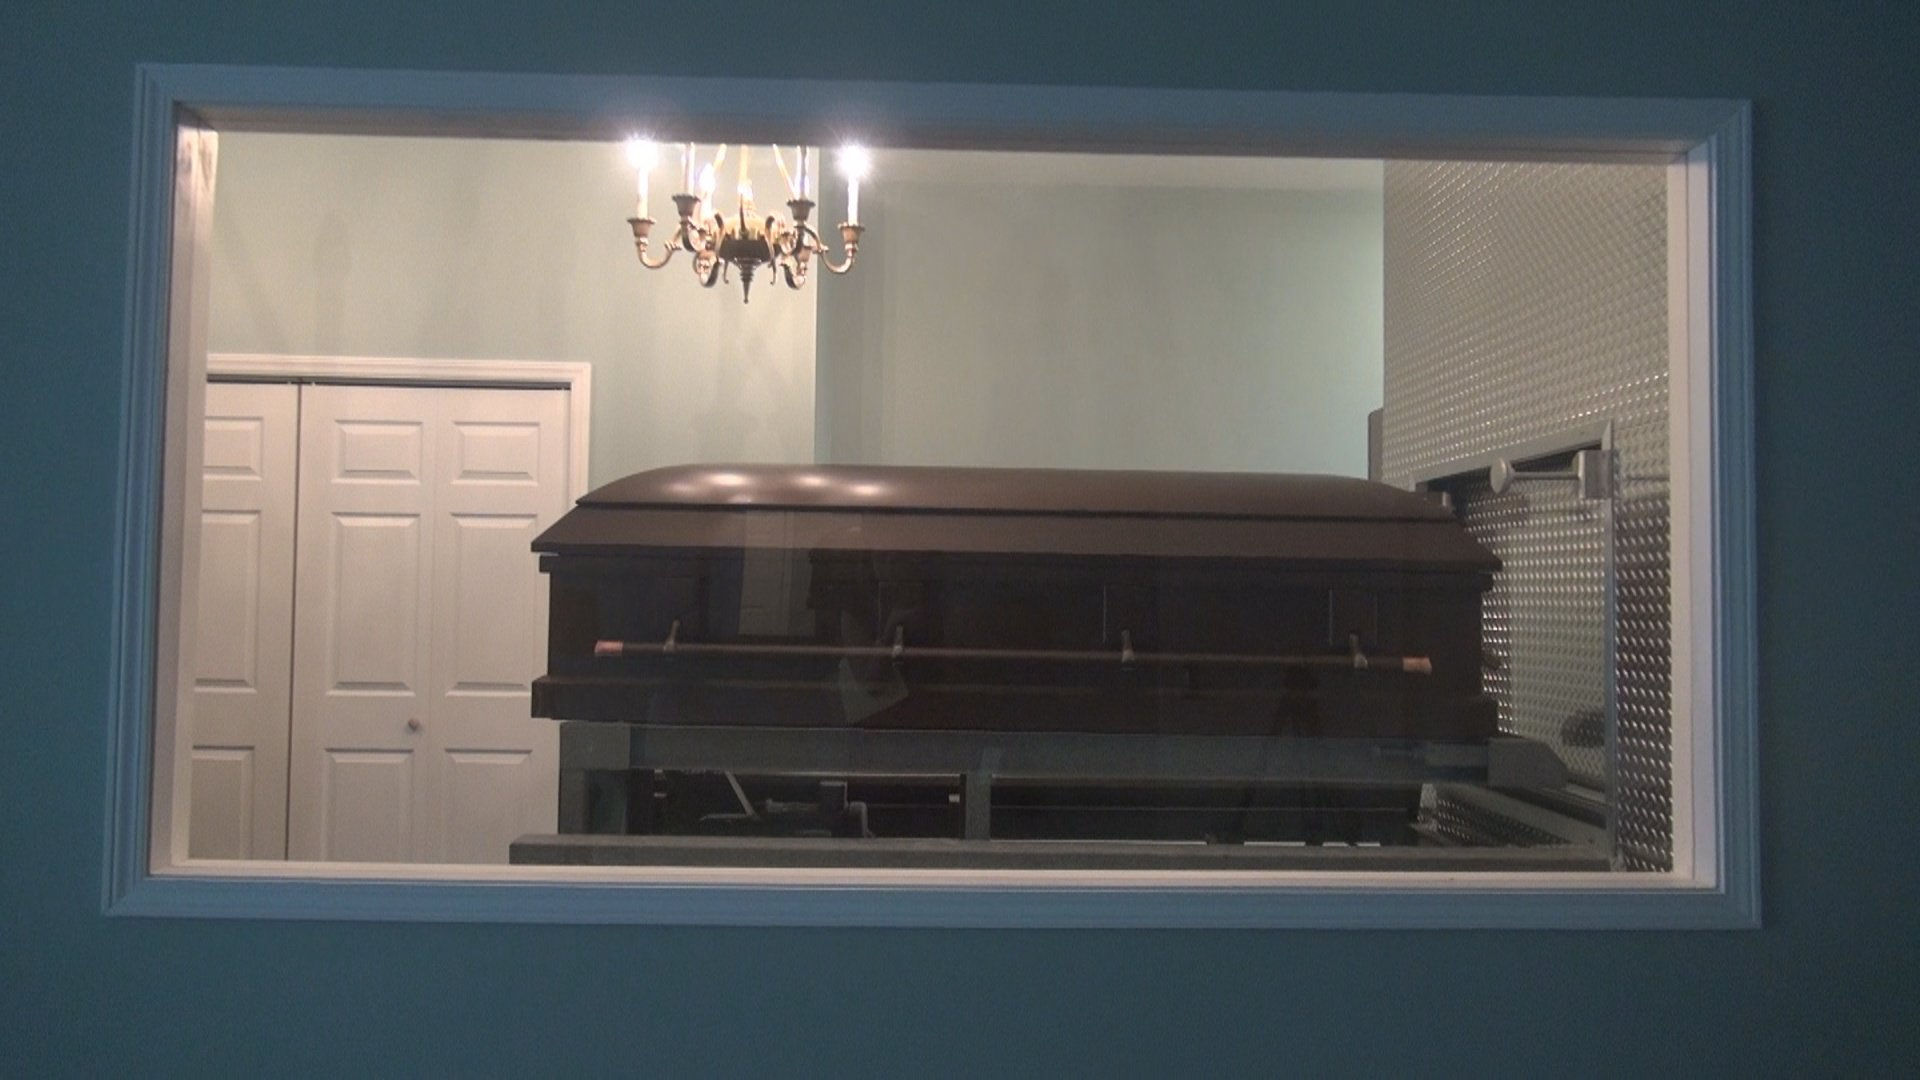 Davis Funeral Home Offers Cremation Services Cremation